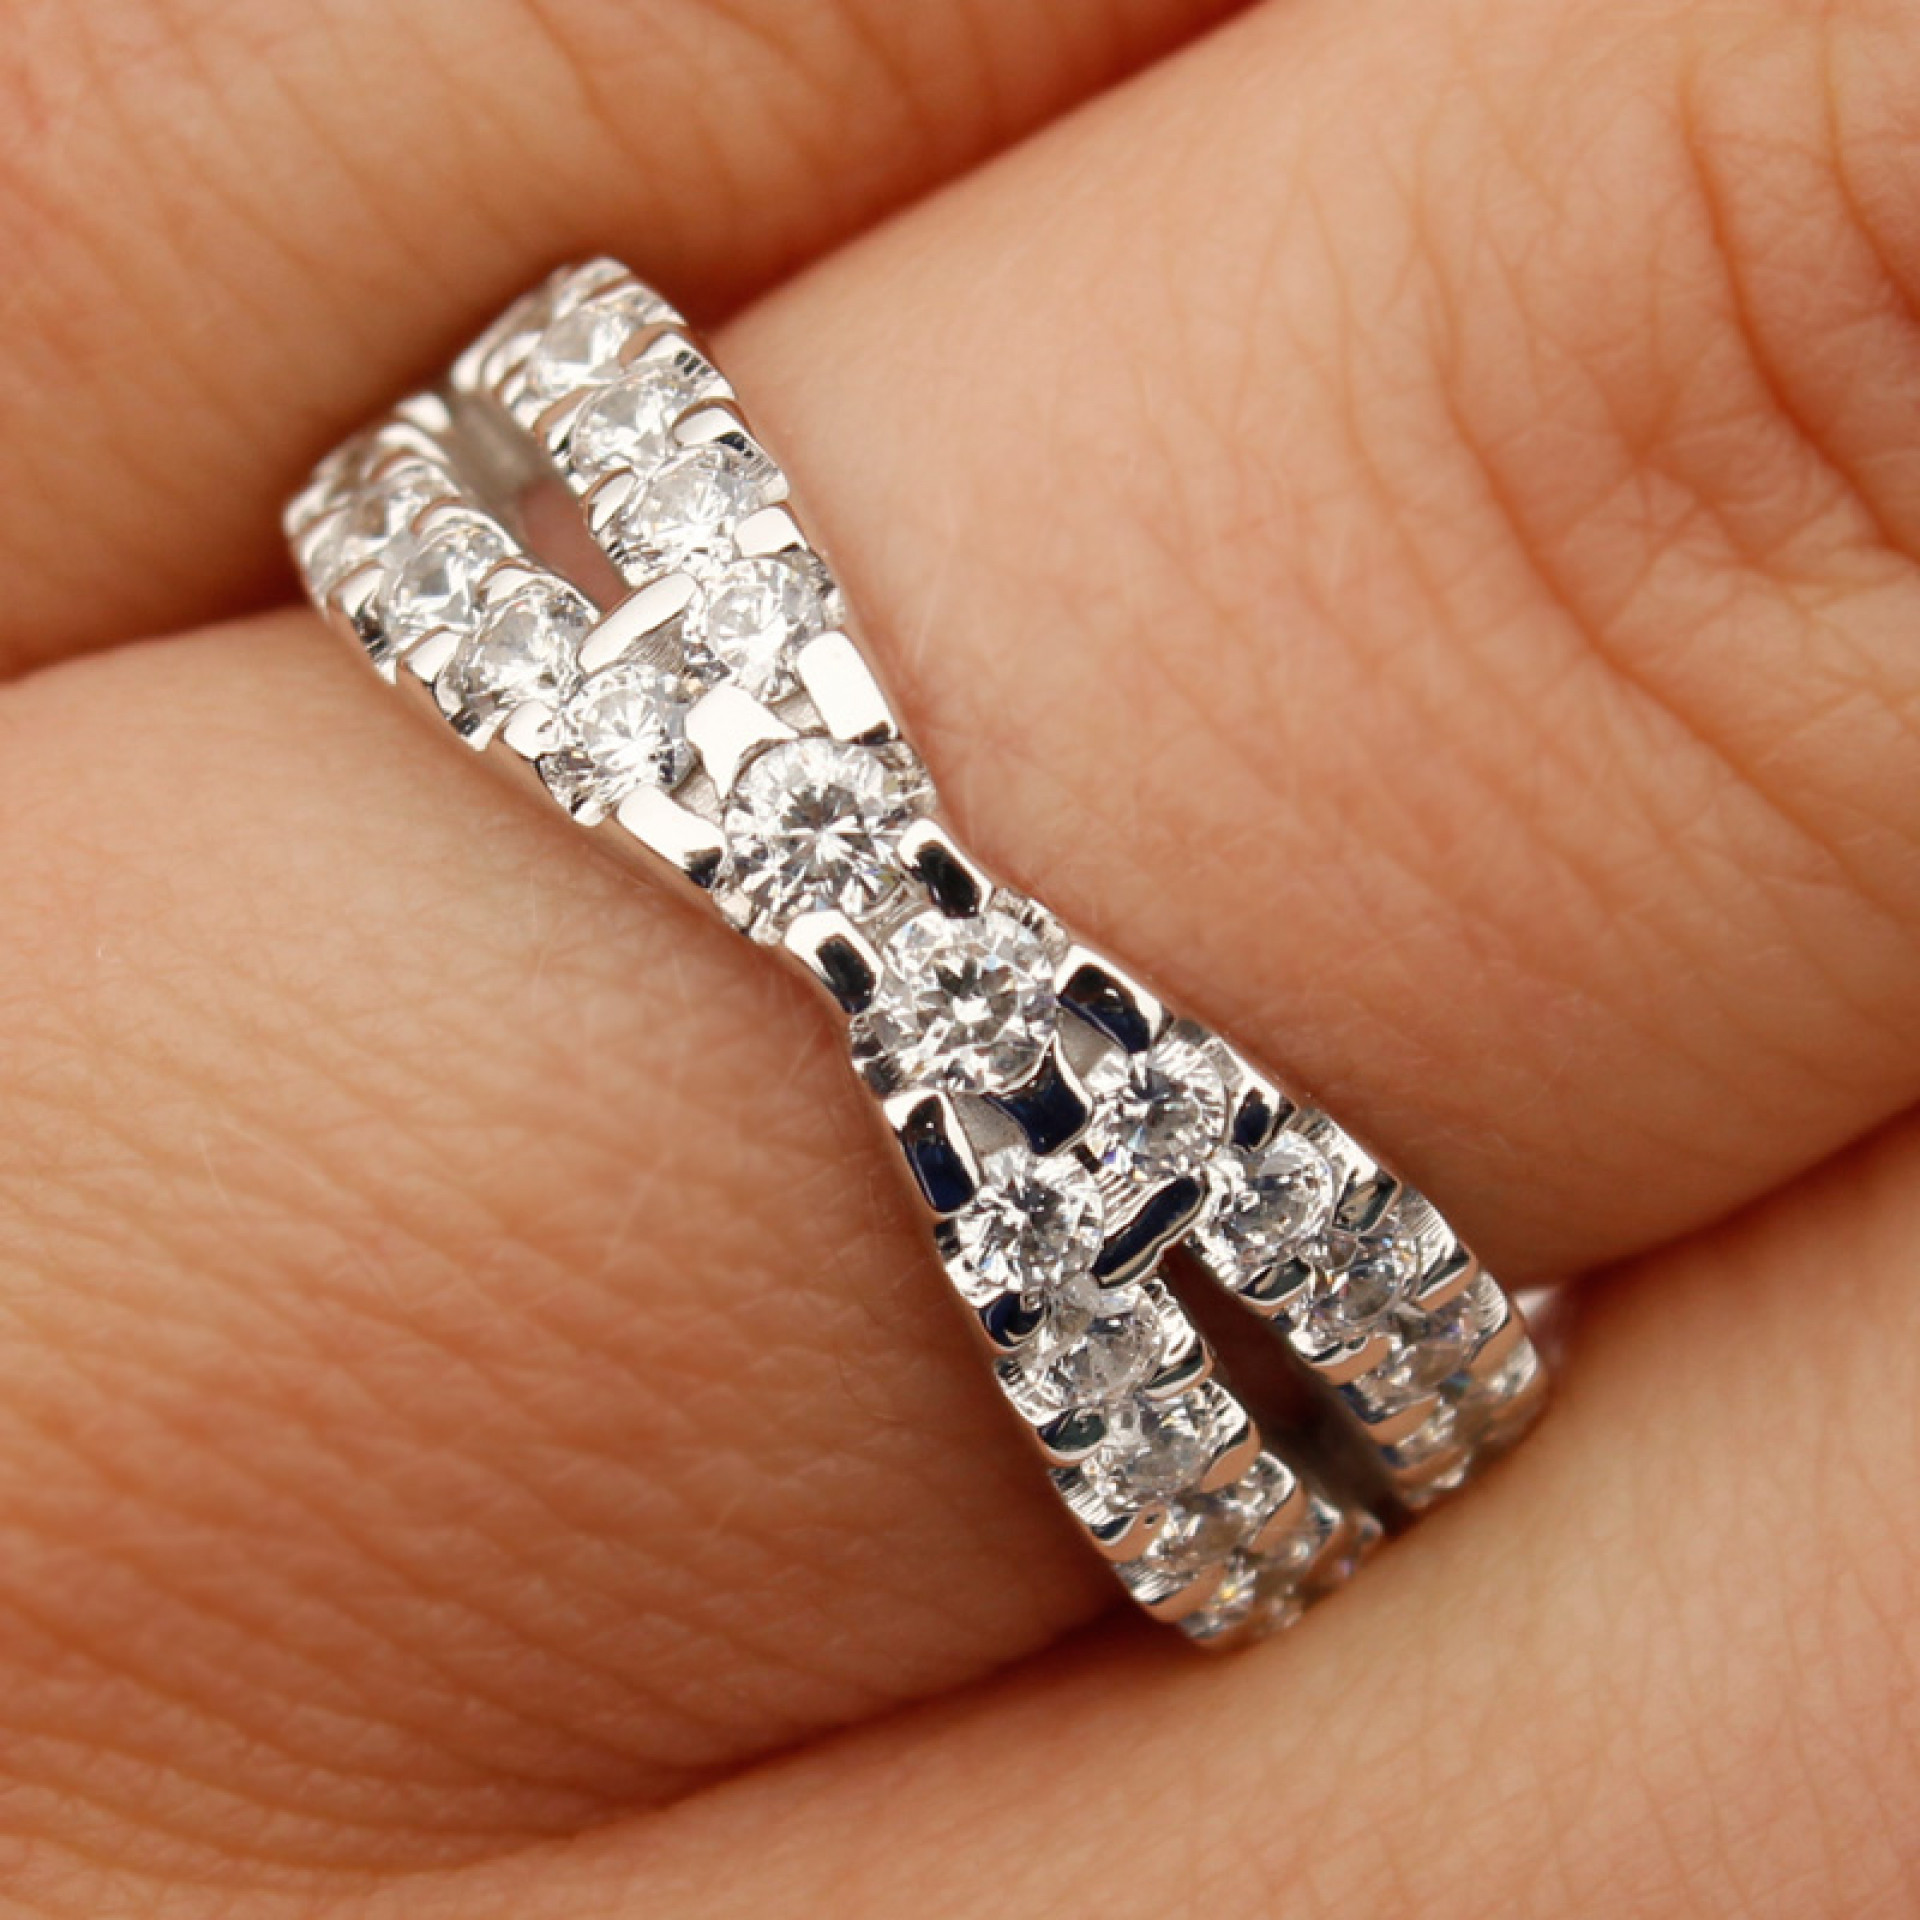 Crossed Wedding Bands.Criss Cross Ring 14k White Gold Size 7 0